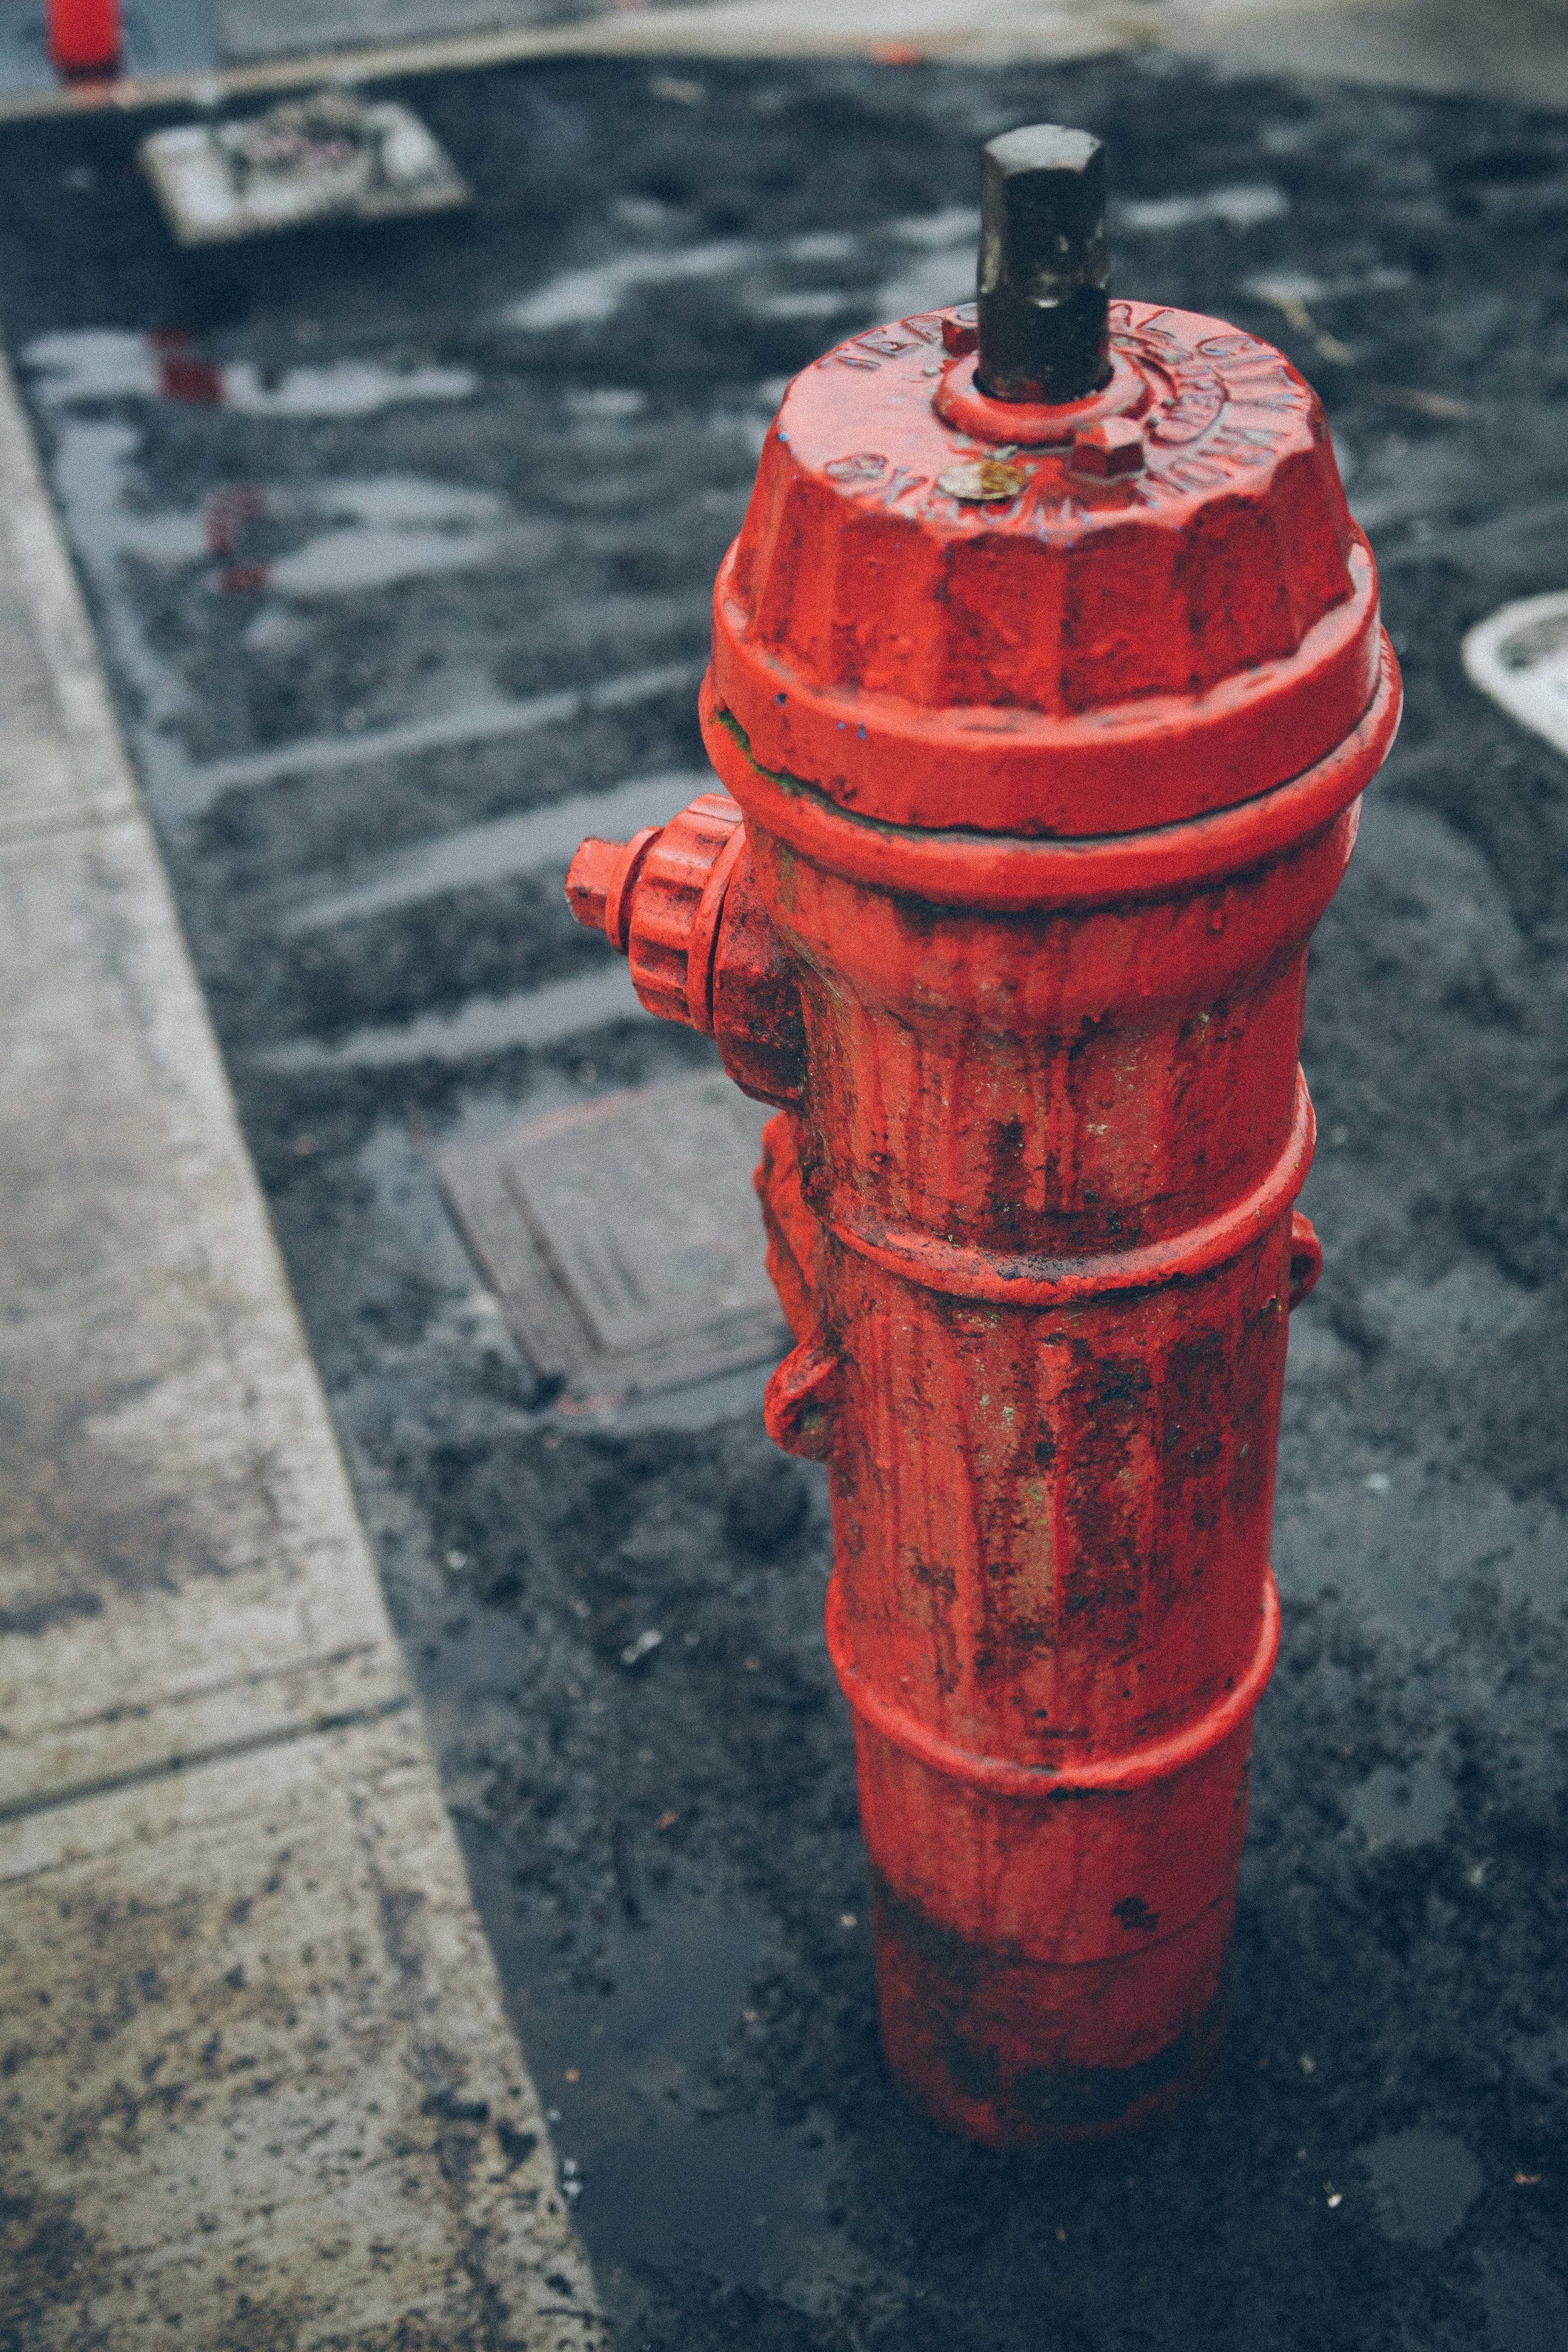 Fire hydrants fascinate me–they hold such a practical purpose but no one really gives them love except for dogs.